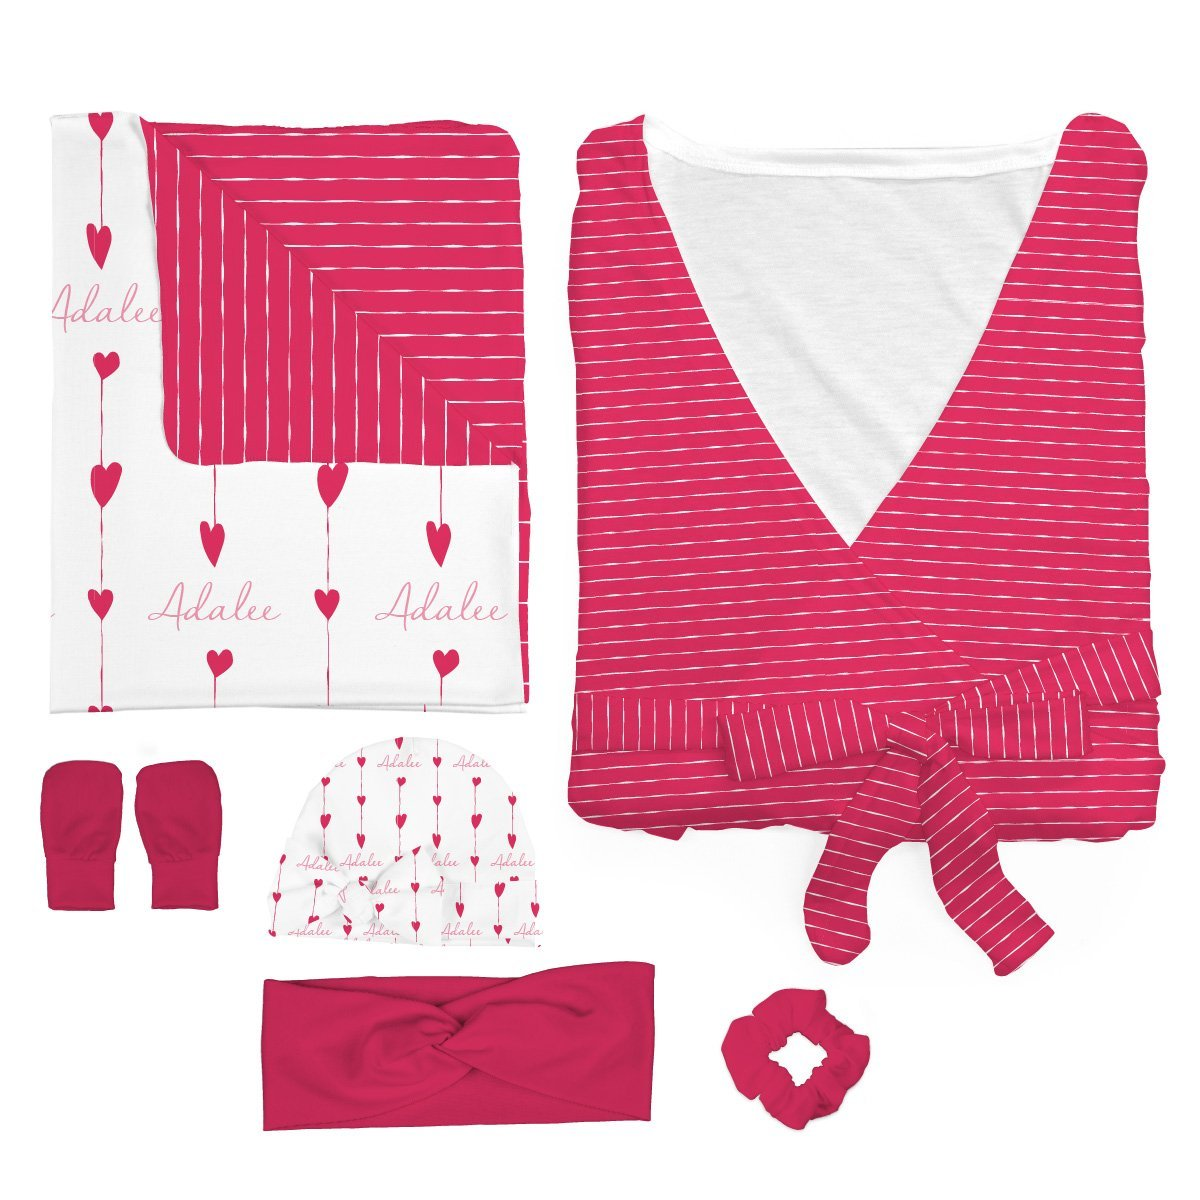 Adalee's Valentine Hearts| Mommy & Me Bundle